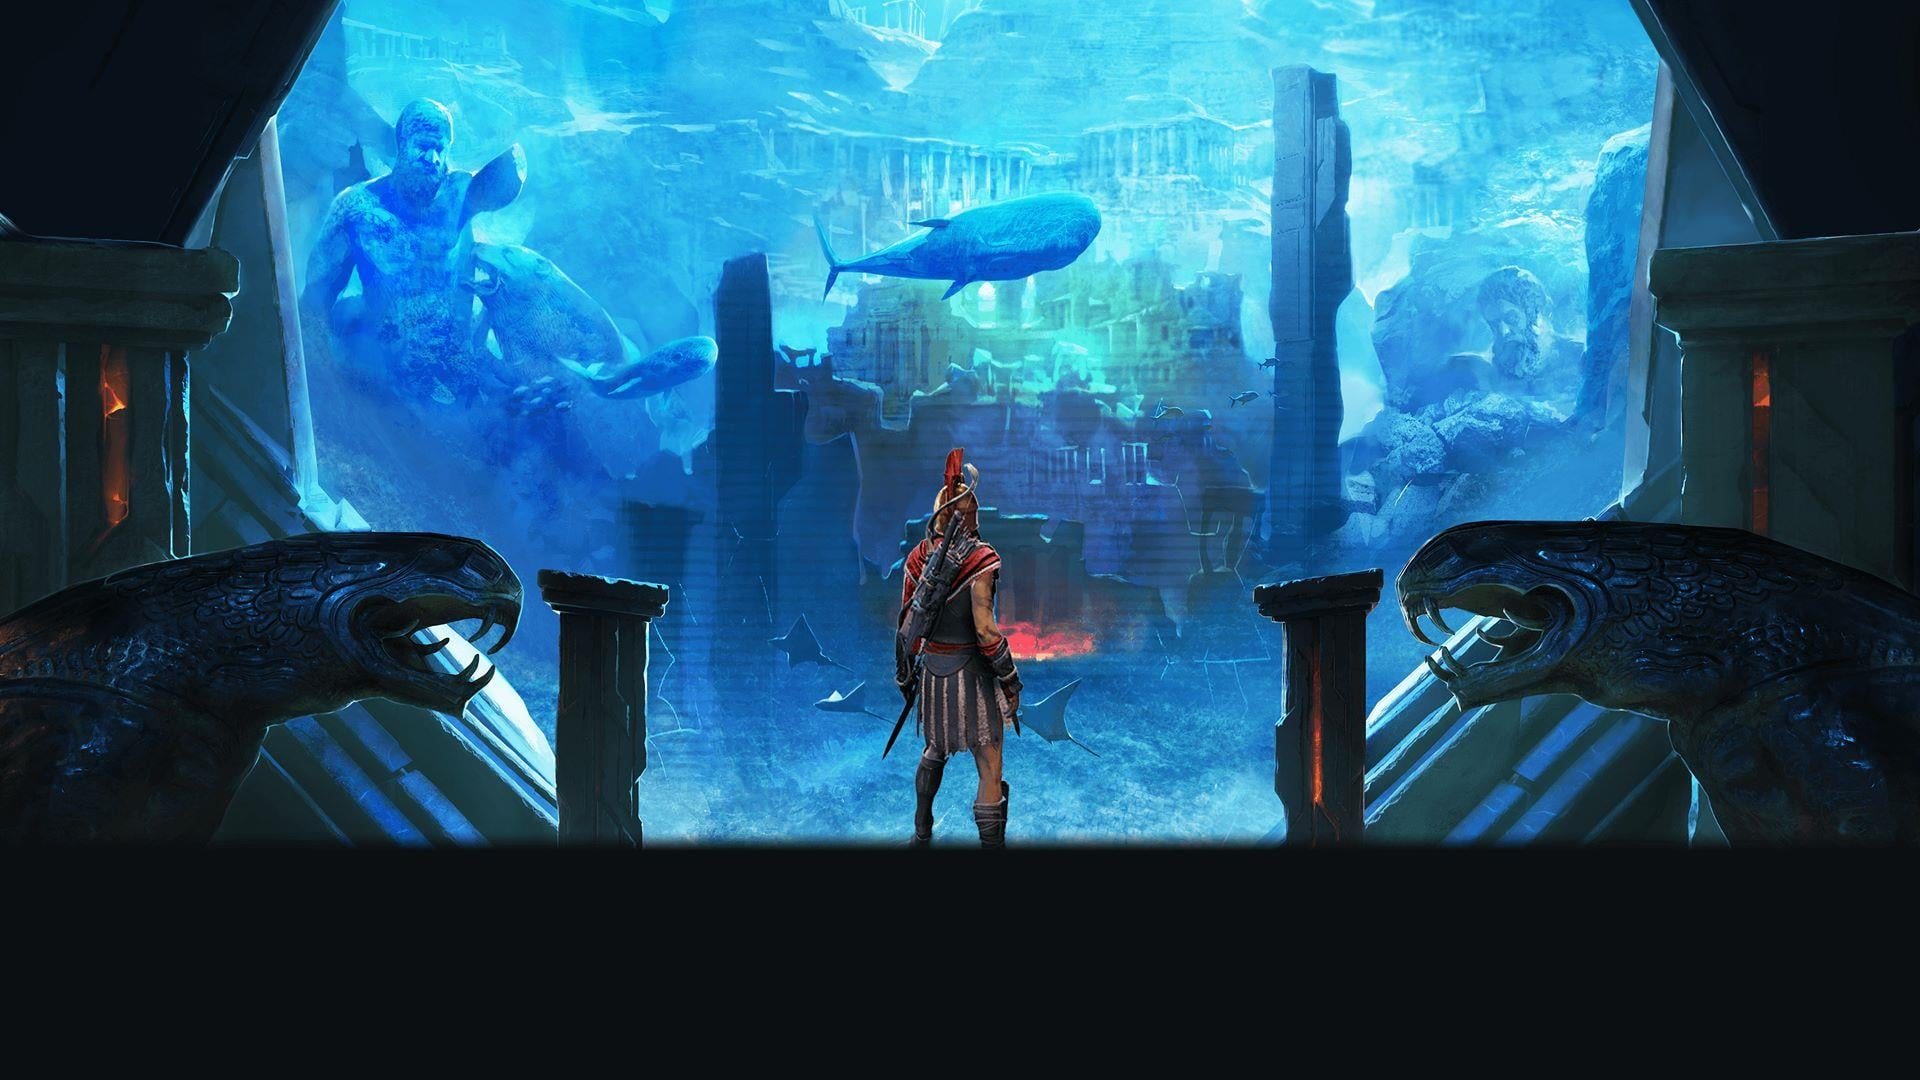 Assassin's Creed Odyssey: Fate of Atlantis DLC Details Ability